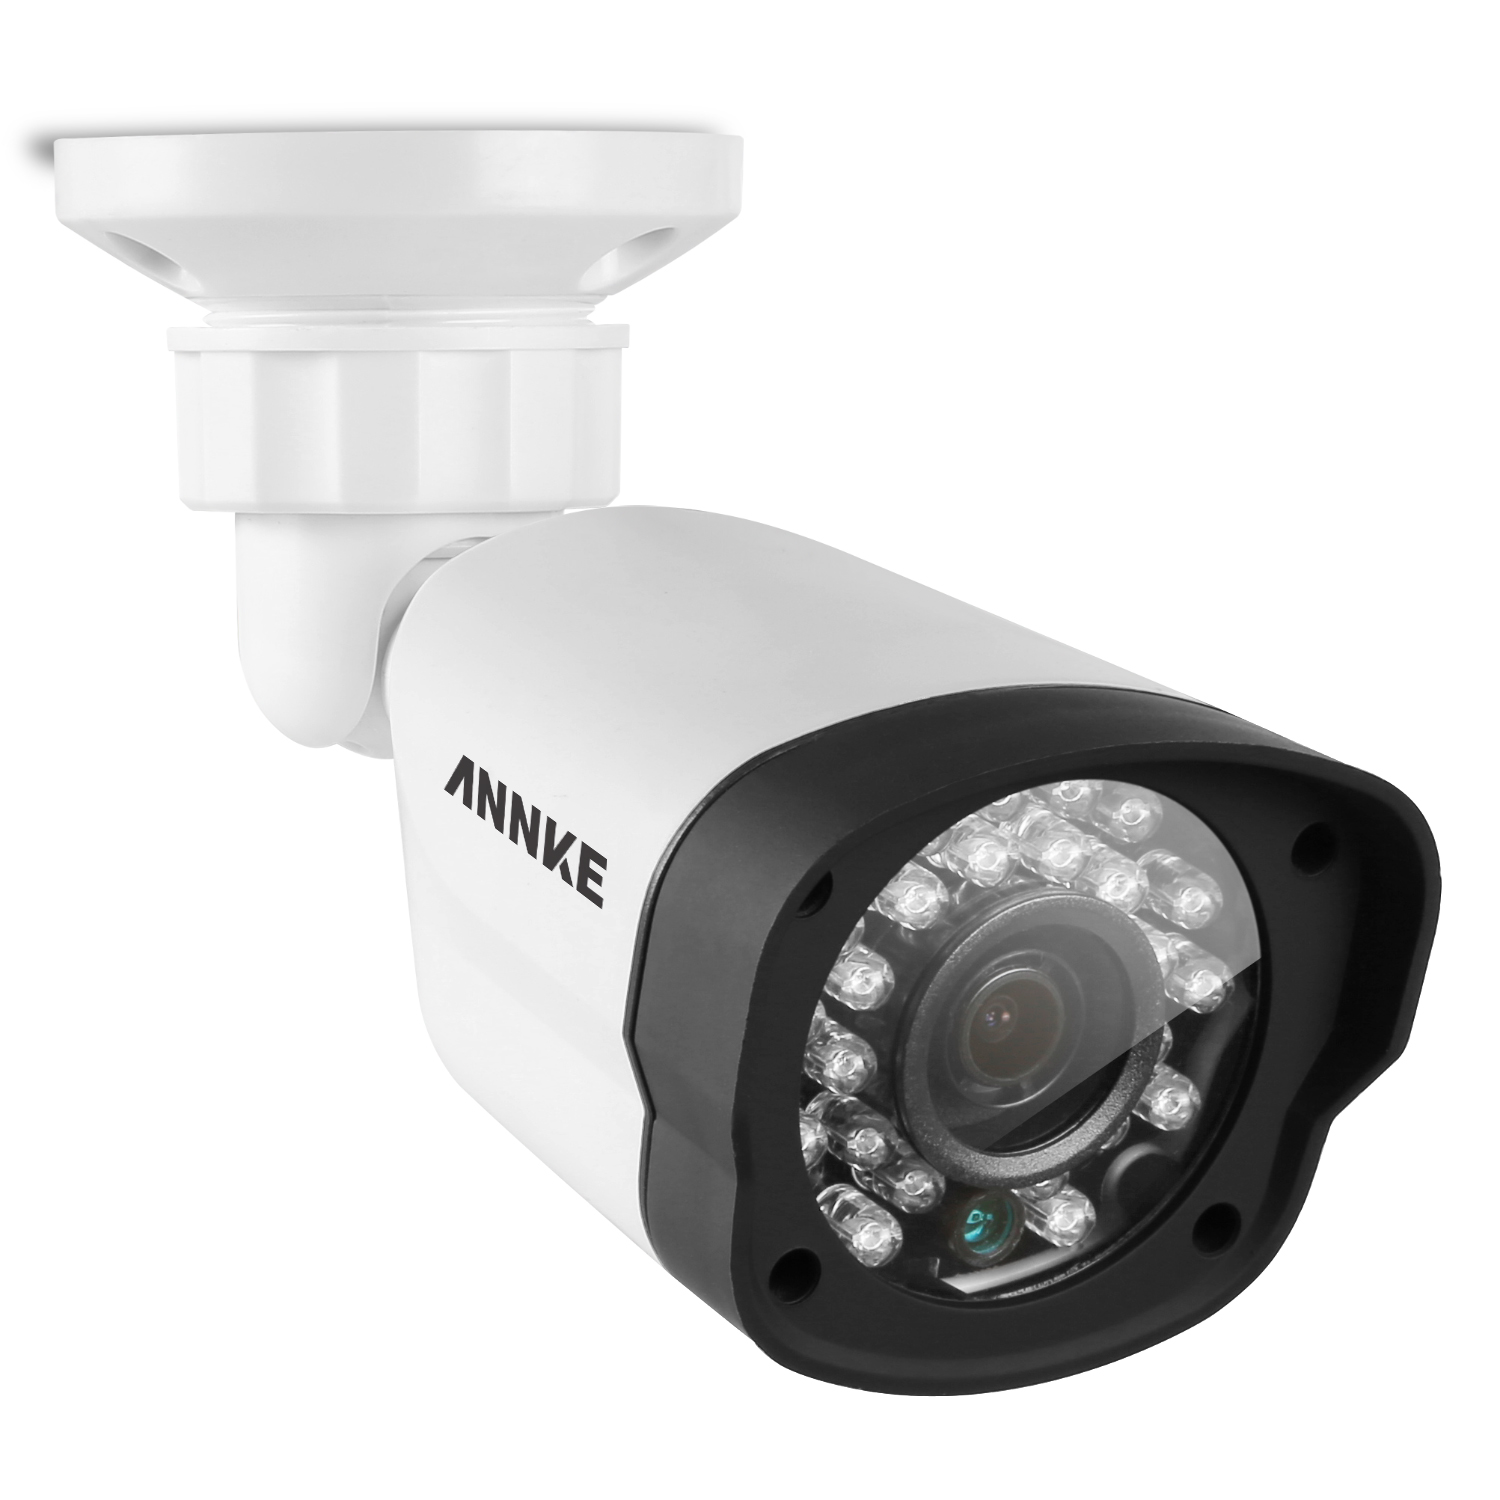 ANNKE CT1AH 1080P HD 4IN1 Security Camera with Weatherproof Housing and 66ft Super Night Vision Up to 66ft/20m Night Vision<br>